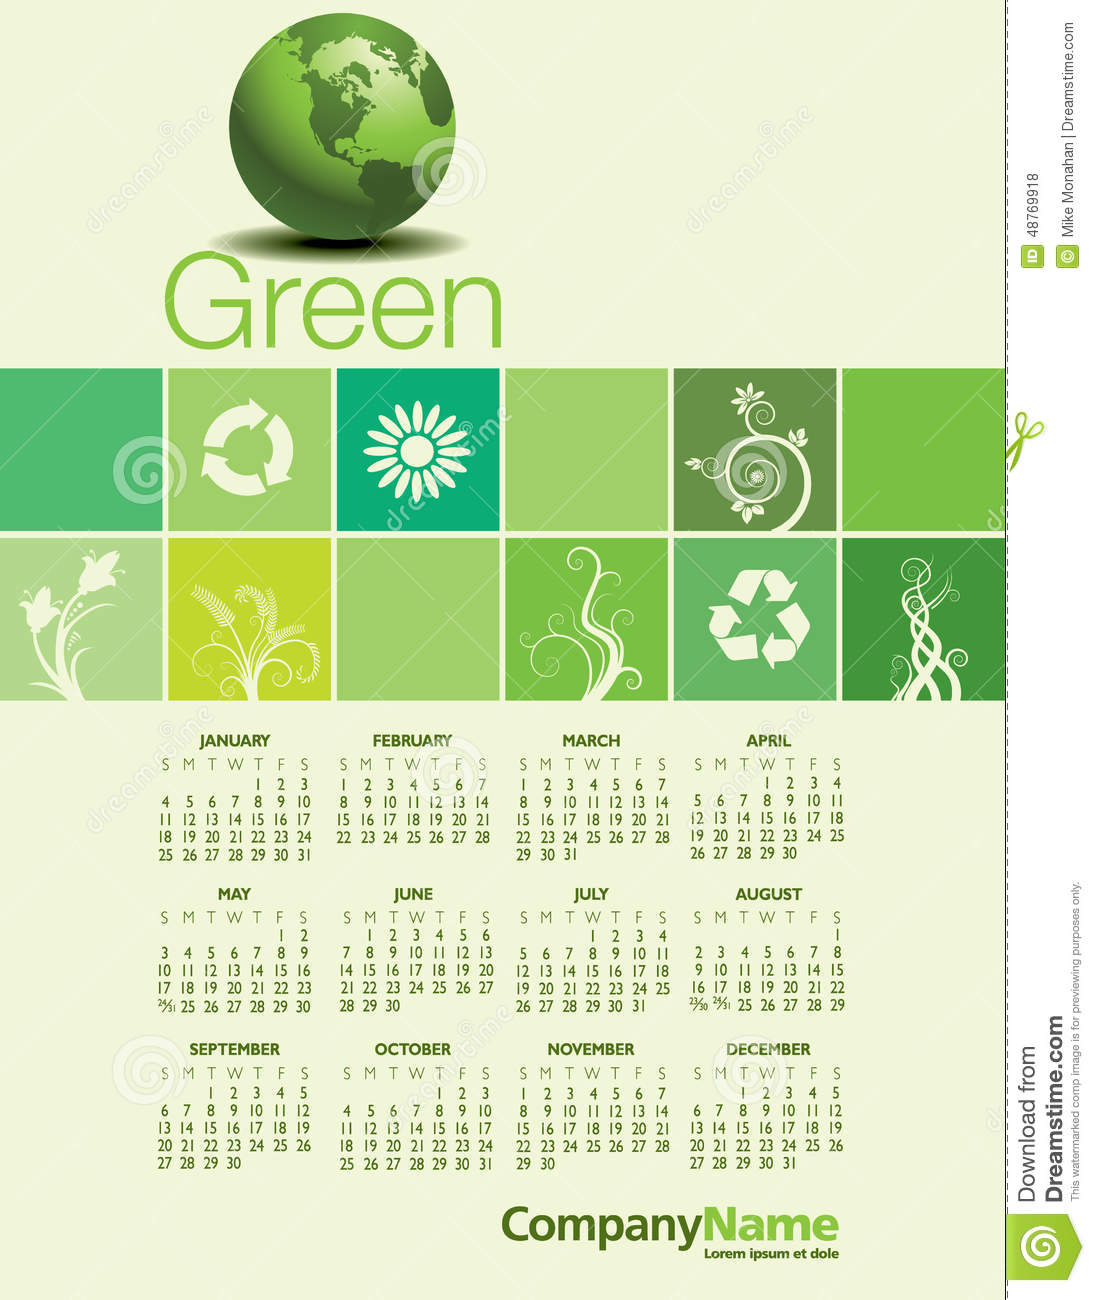 Calendar Design Ideas Ks : A green environmental calendar stock vector